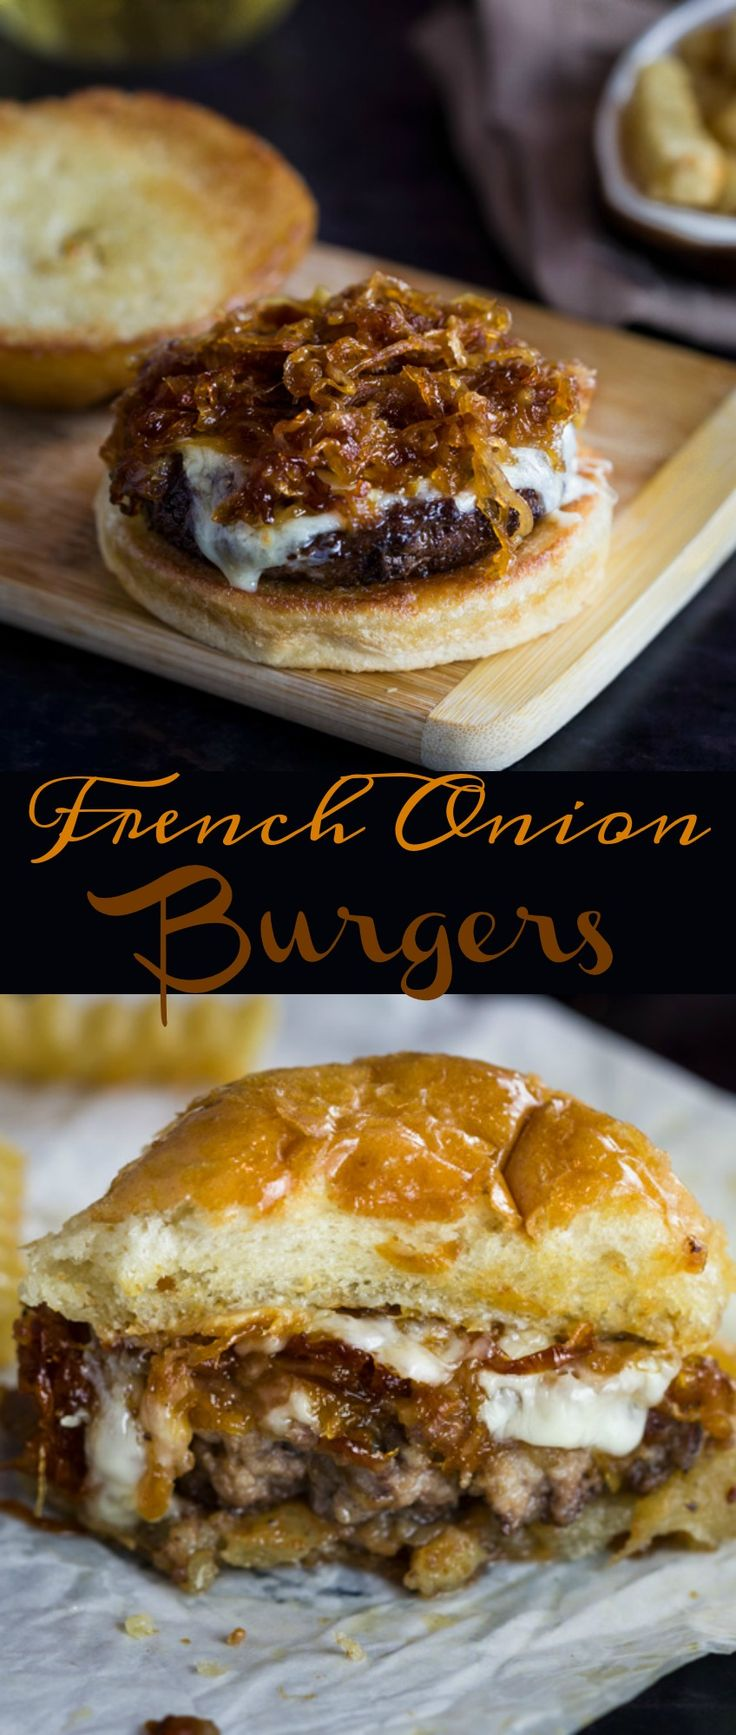 These extra juicy, perfectly cooked burgers are topped with melted Gruyere cheese, caramelized onions, and are served over golden burger buns.